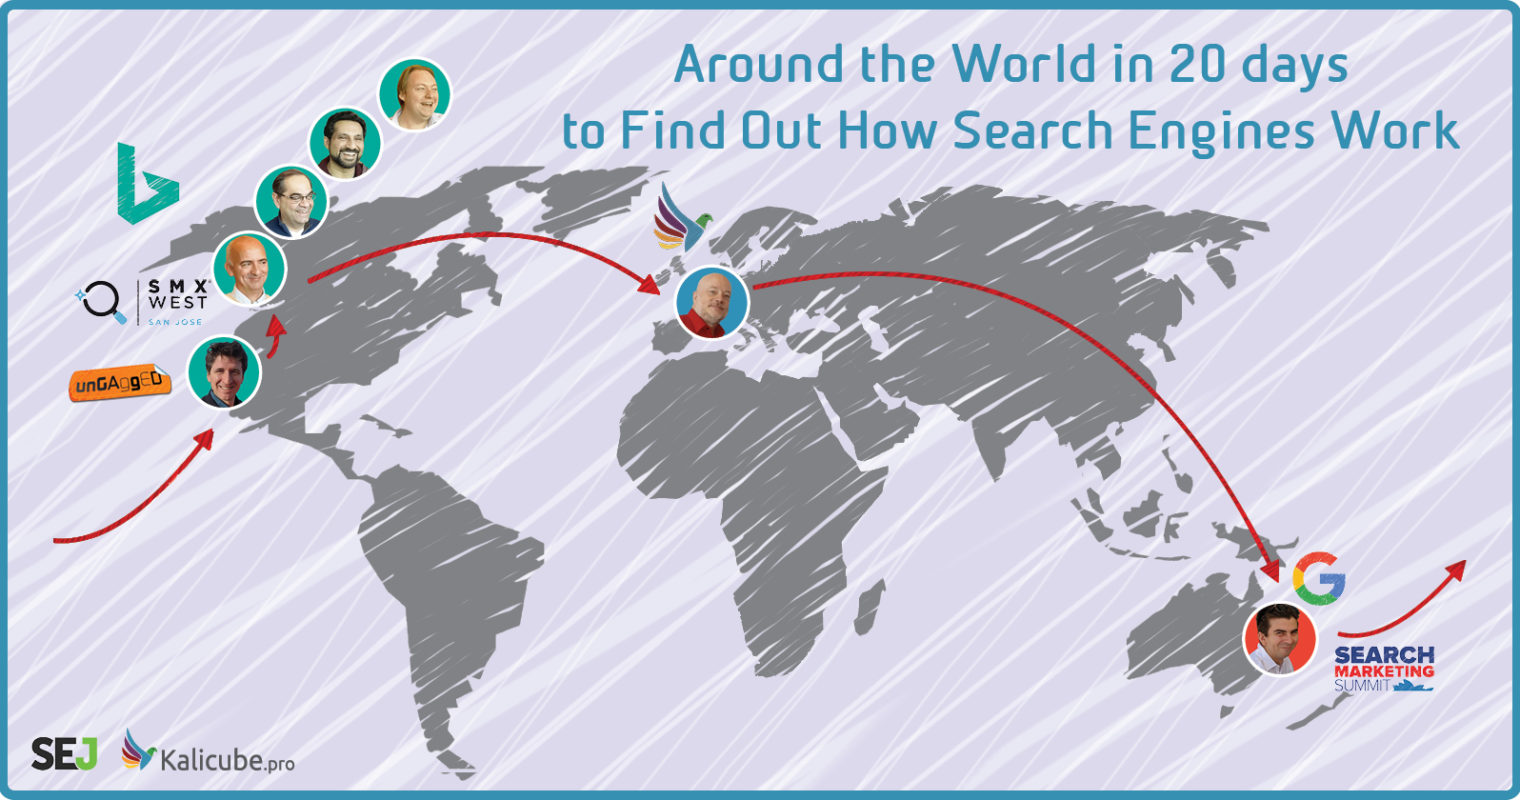 How Bing Ranks Search Results: Core Algorithm & Blue Links